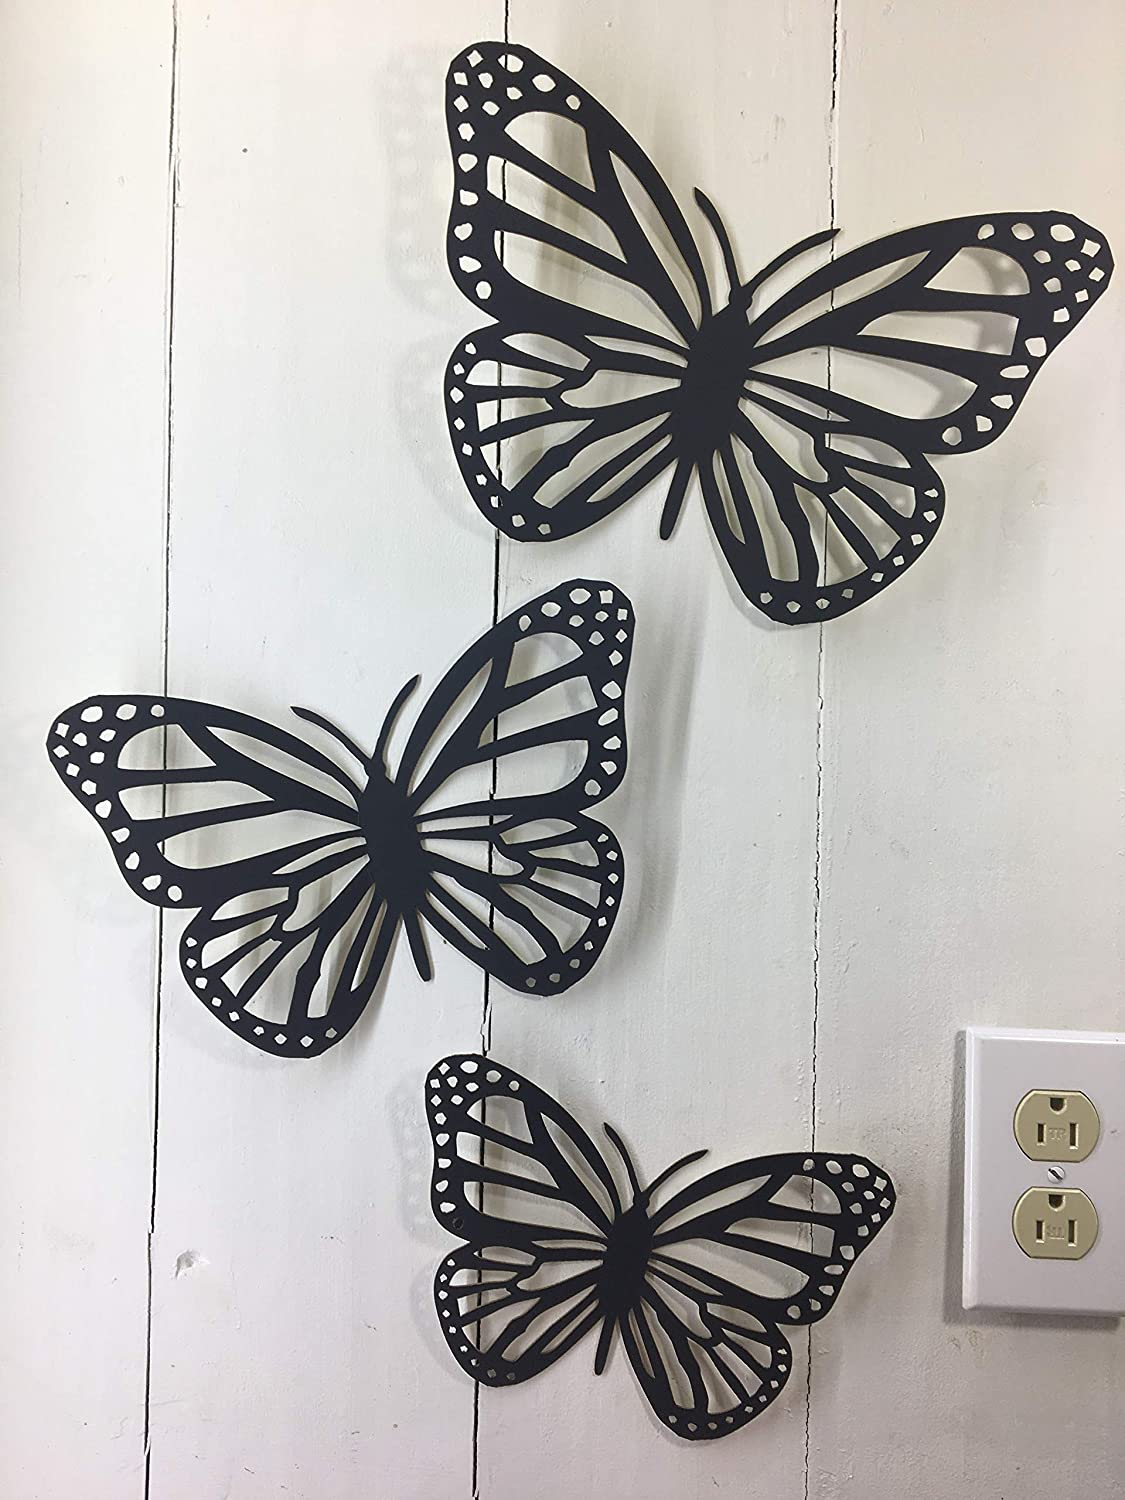 3 Butterflies - Large Butterfly Approx 11 x 8 inches - This is NOT Vinyl Decal or Peel Stick - 1/16 inch Thick matboard - Easily Tak-it-Up with Plasti-Tak provided Removable Paintable Wall Décor